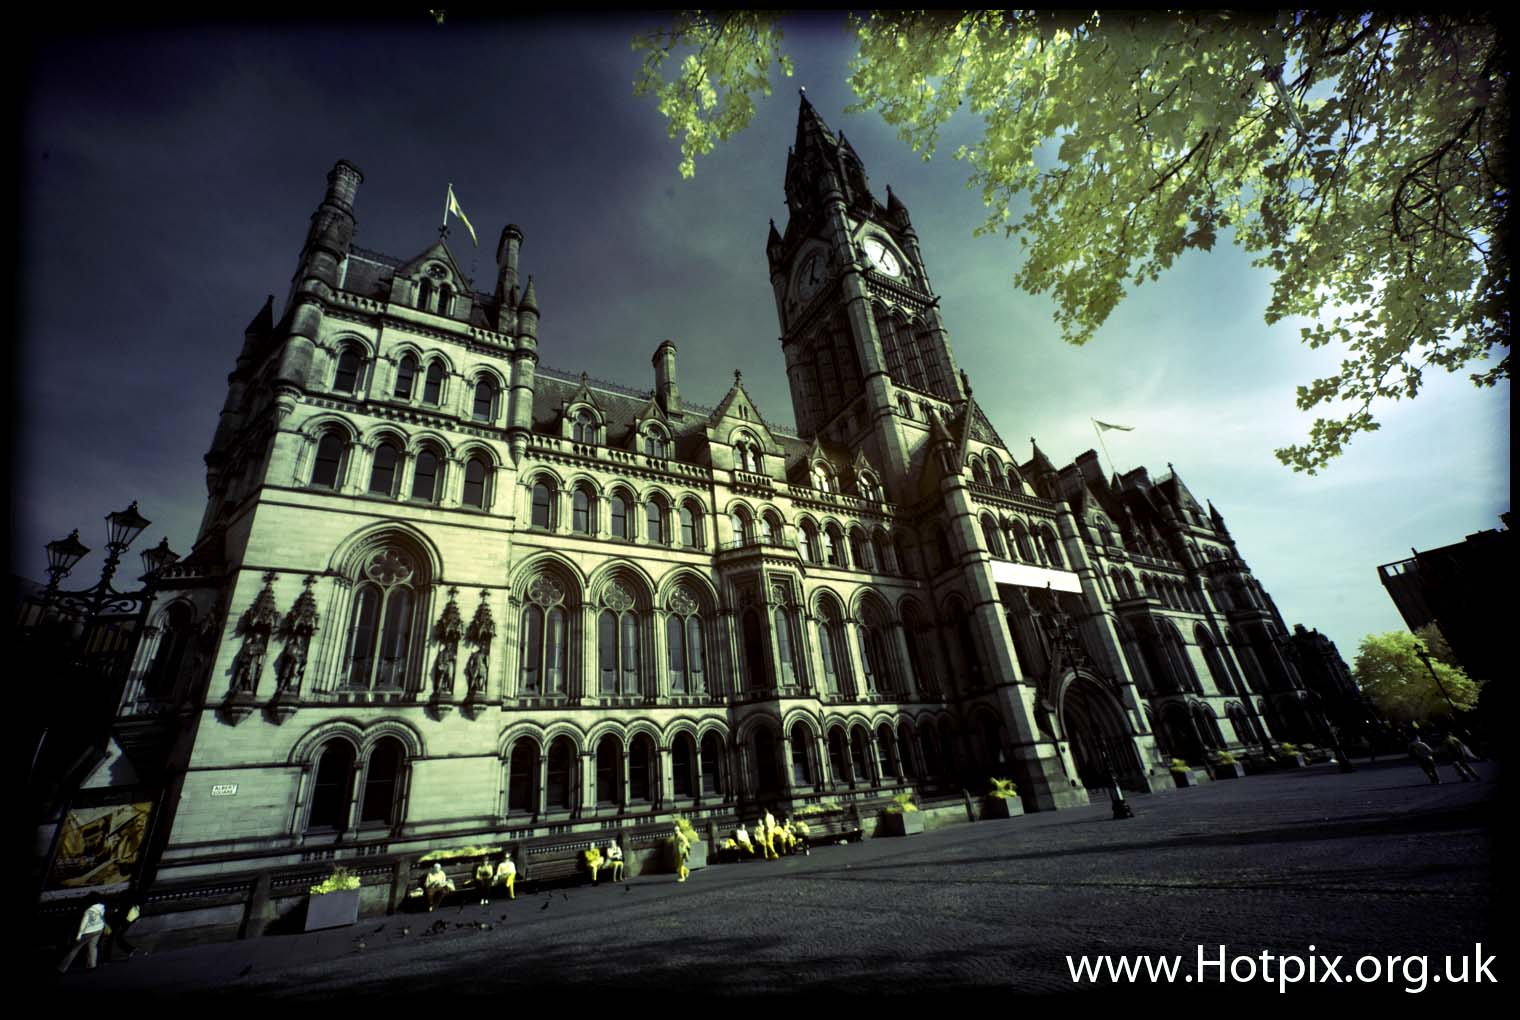 Manchester,UK,city,townhall,town,hall,gothic,building,buildings,clock,tower,tony,smith,tonysmith,tonysmithhotpix,hotpix,ir,R72,hoya,infrared,infra,red,720nm,filter,colour,color,GB,great,britain